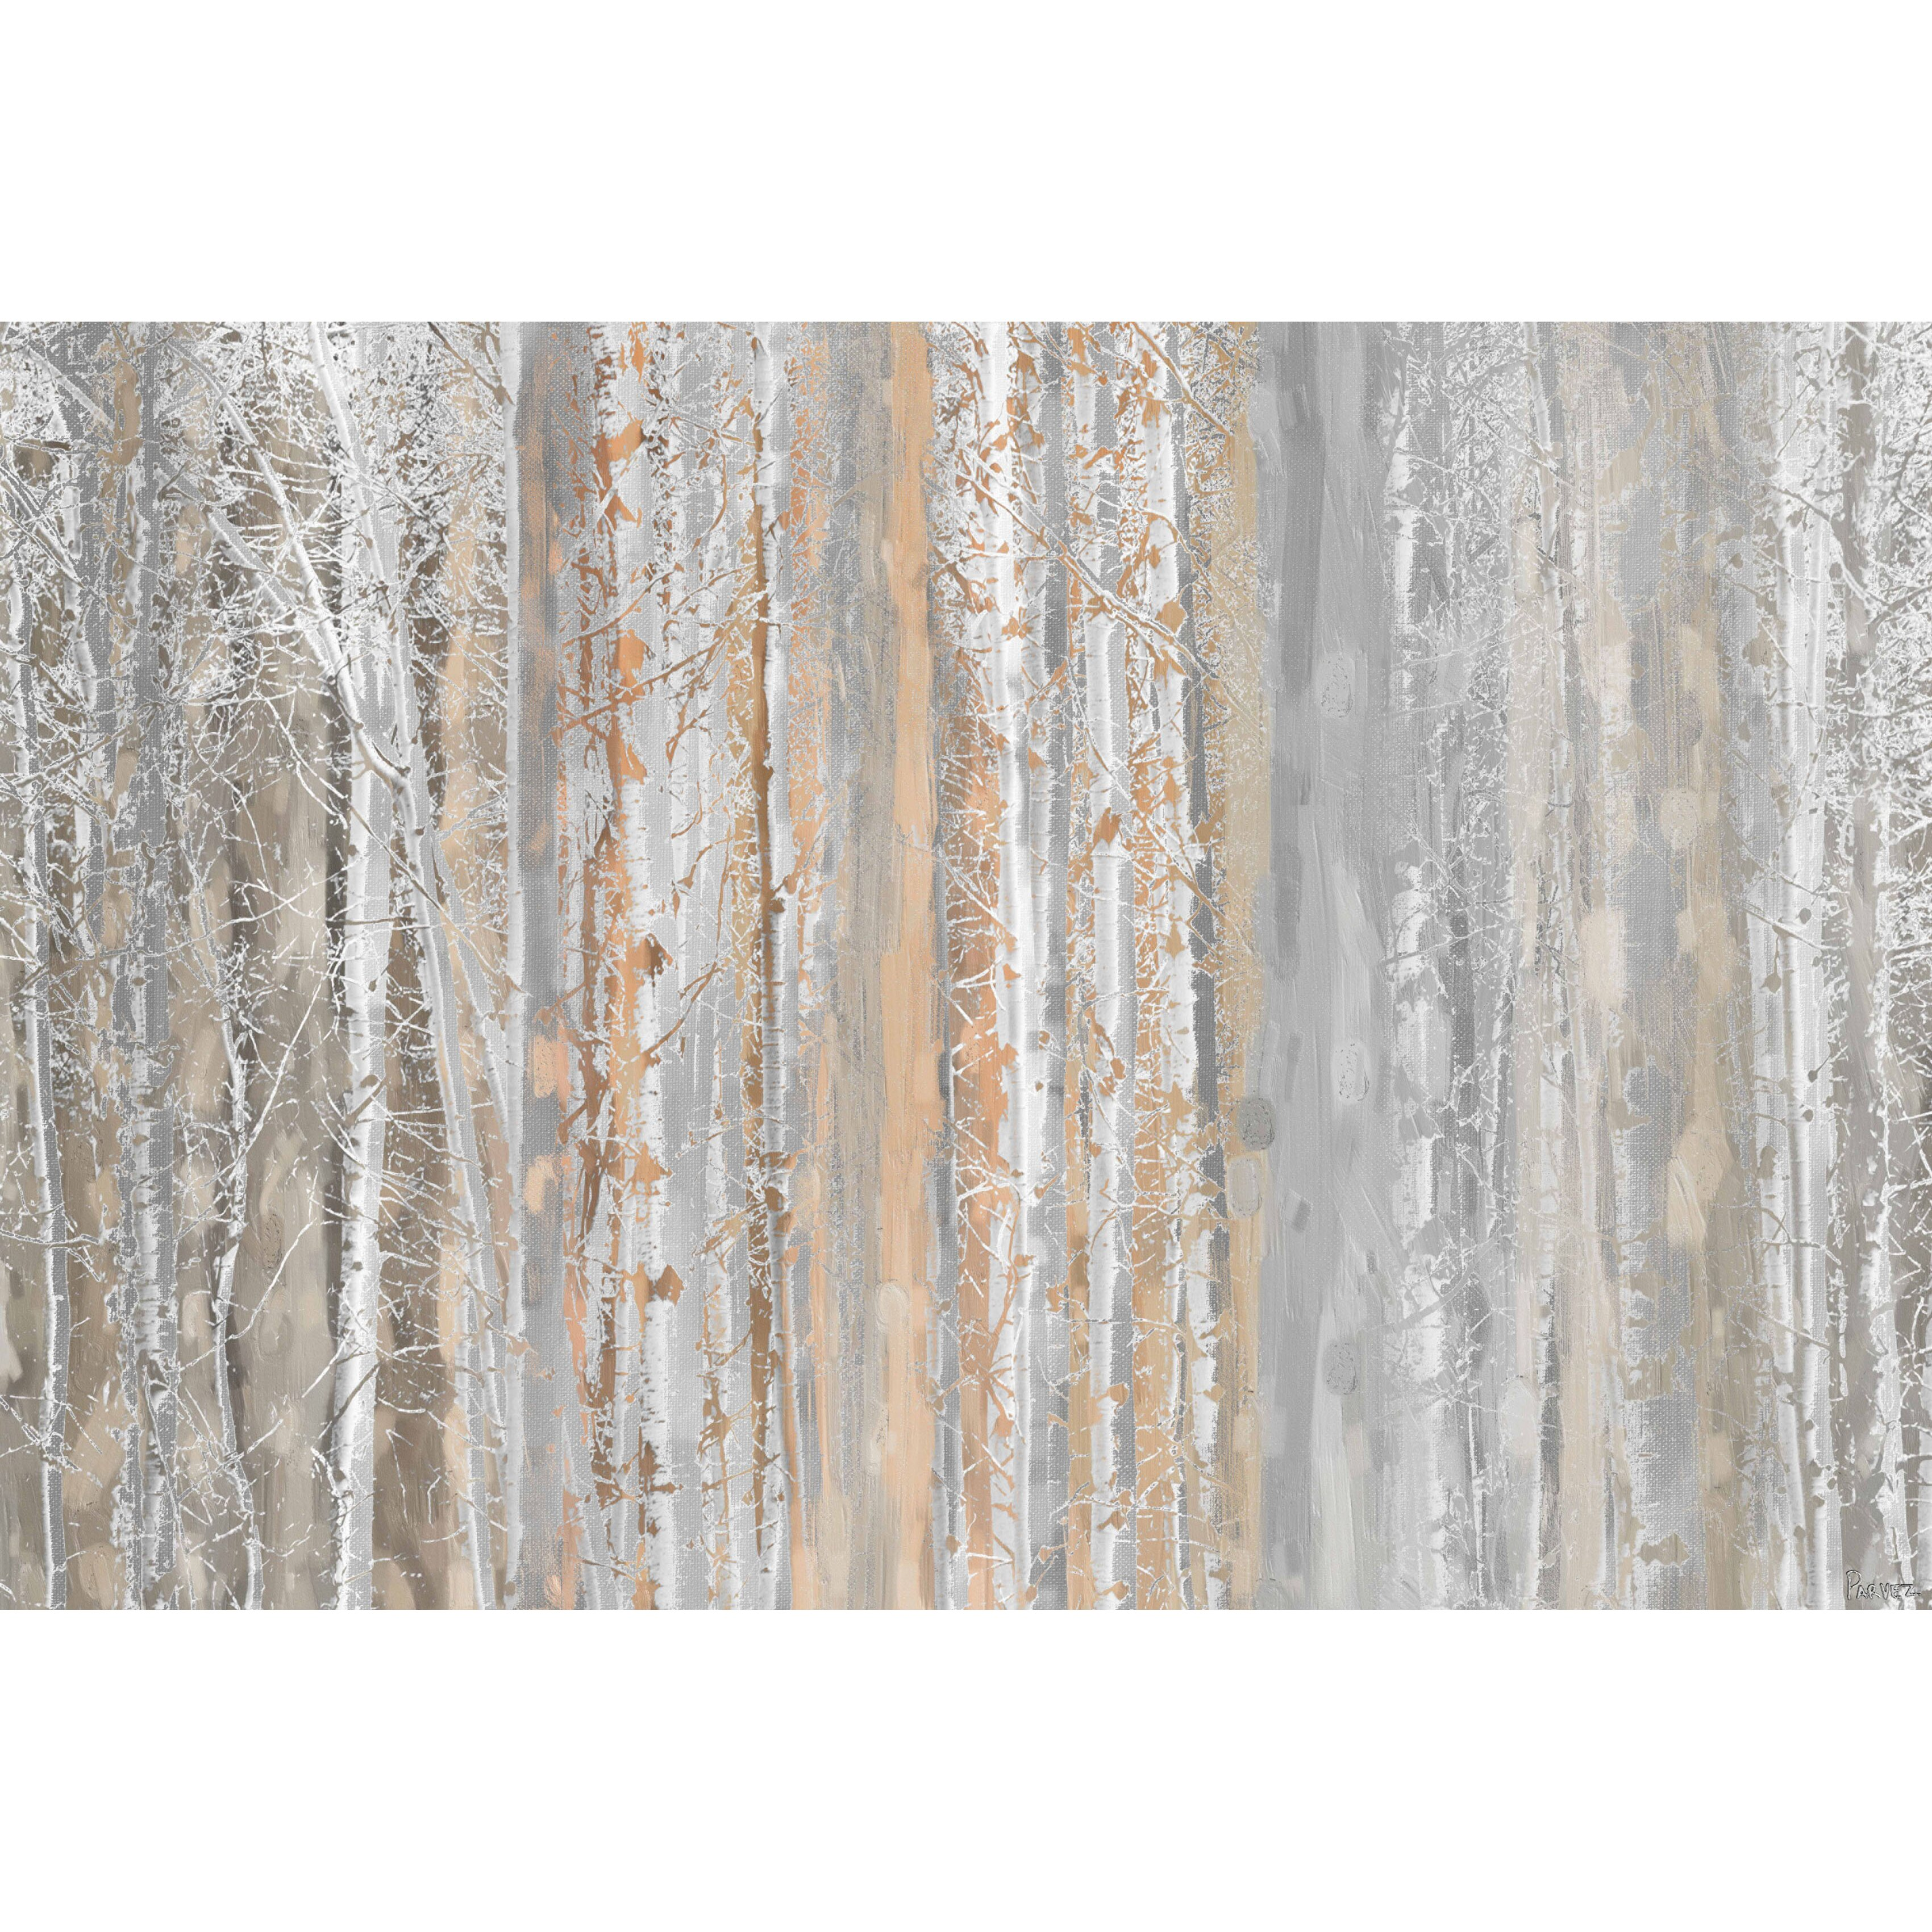 Color printing joliet - Marmont Hill Aspen Forest 1 Painting Print On Wrapped Canvas